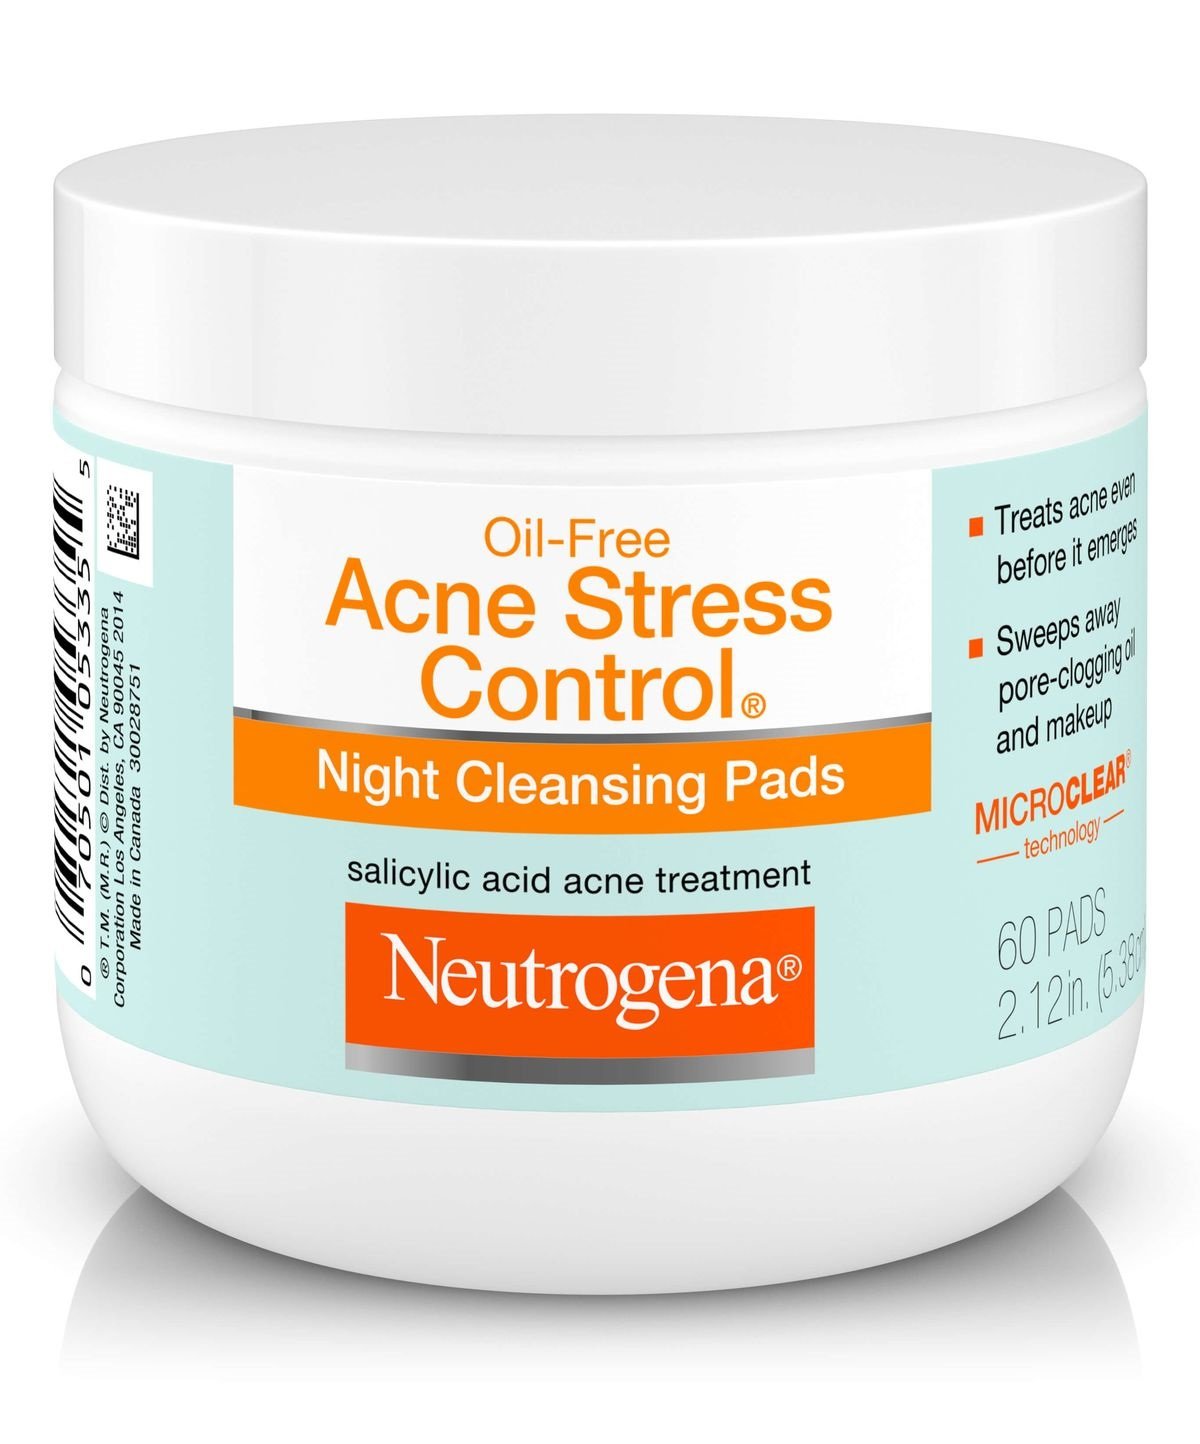 Neutrogena® Oil-free Acne Stress Control® Night Cleansing Pads